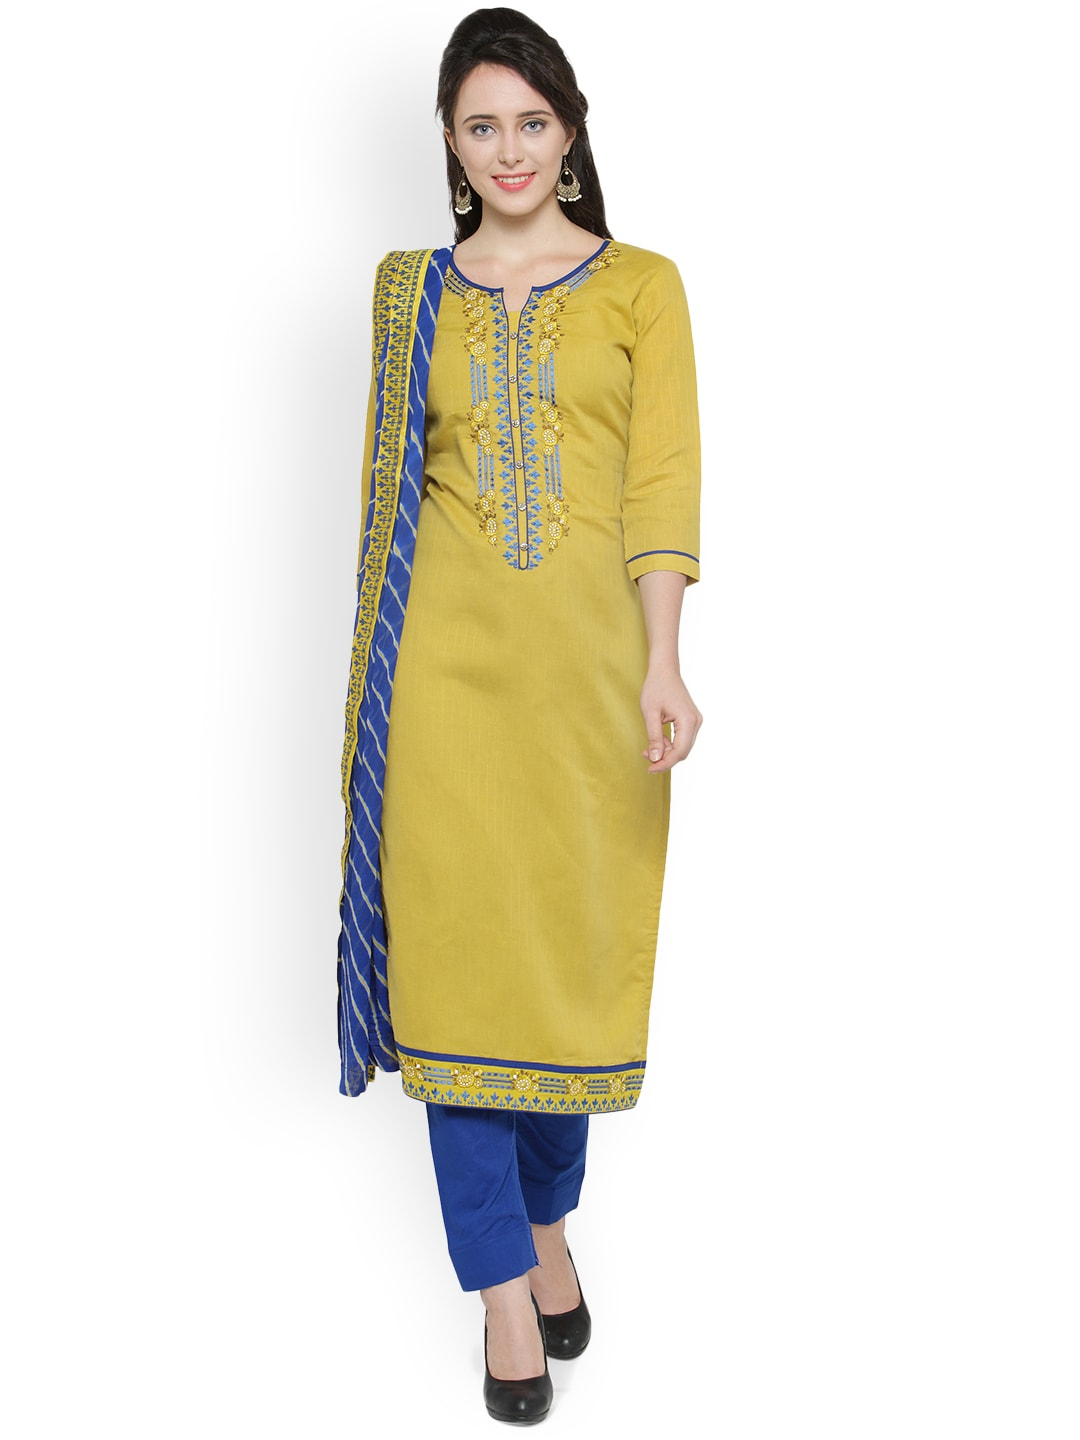 Kvsfab Mustard Yellow & Blue Pure Cotton Unstitched Dress Material image